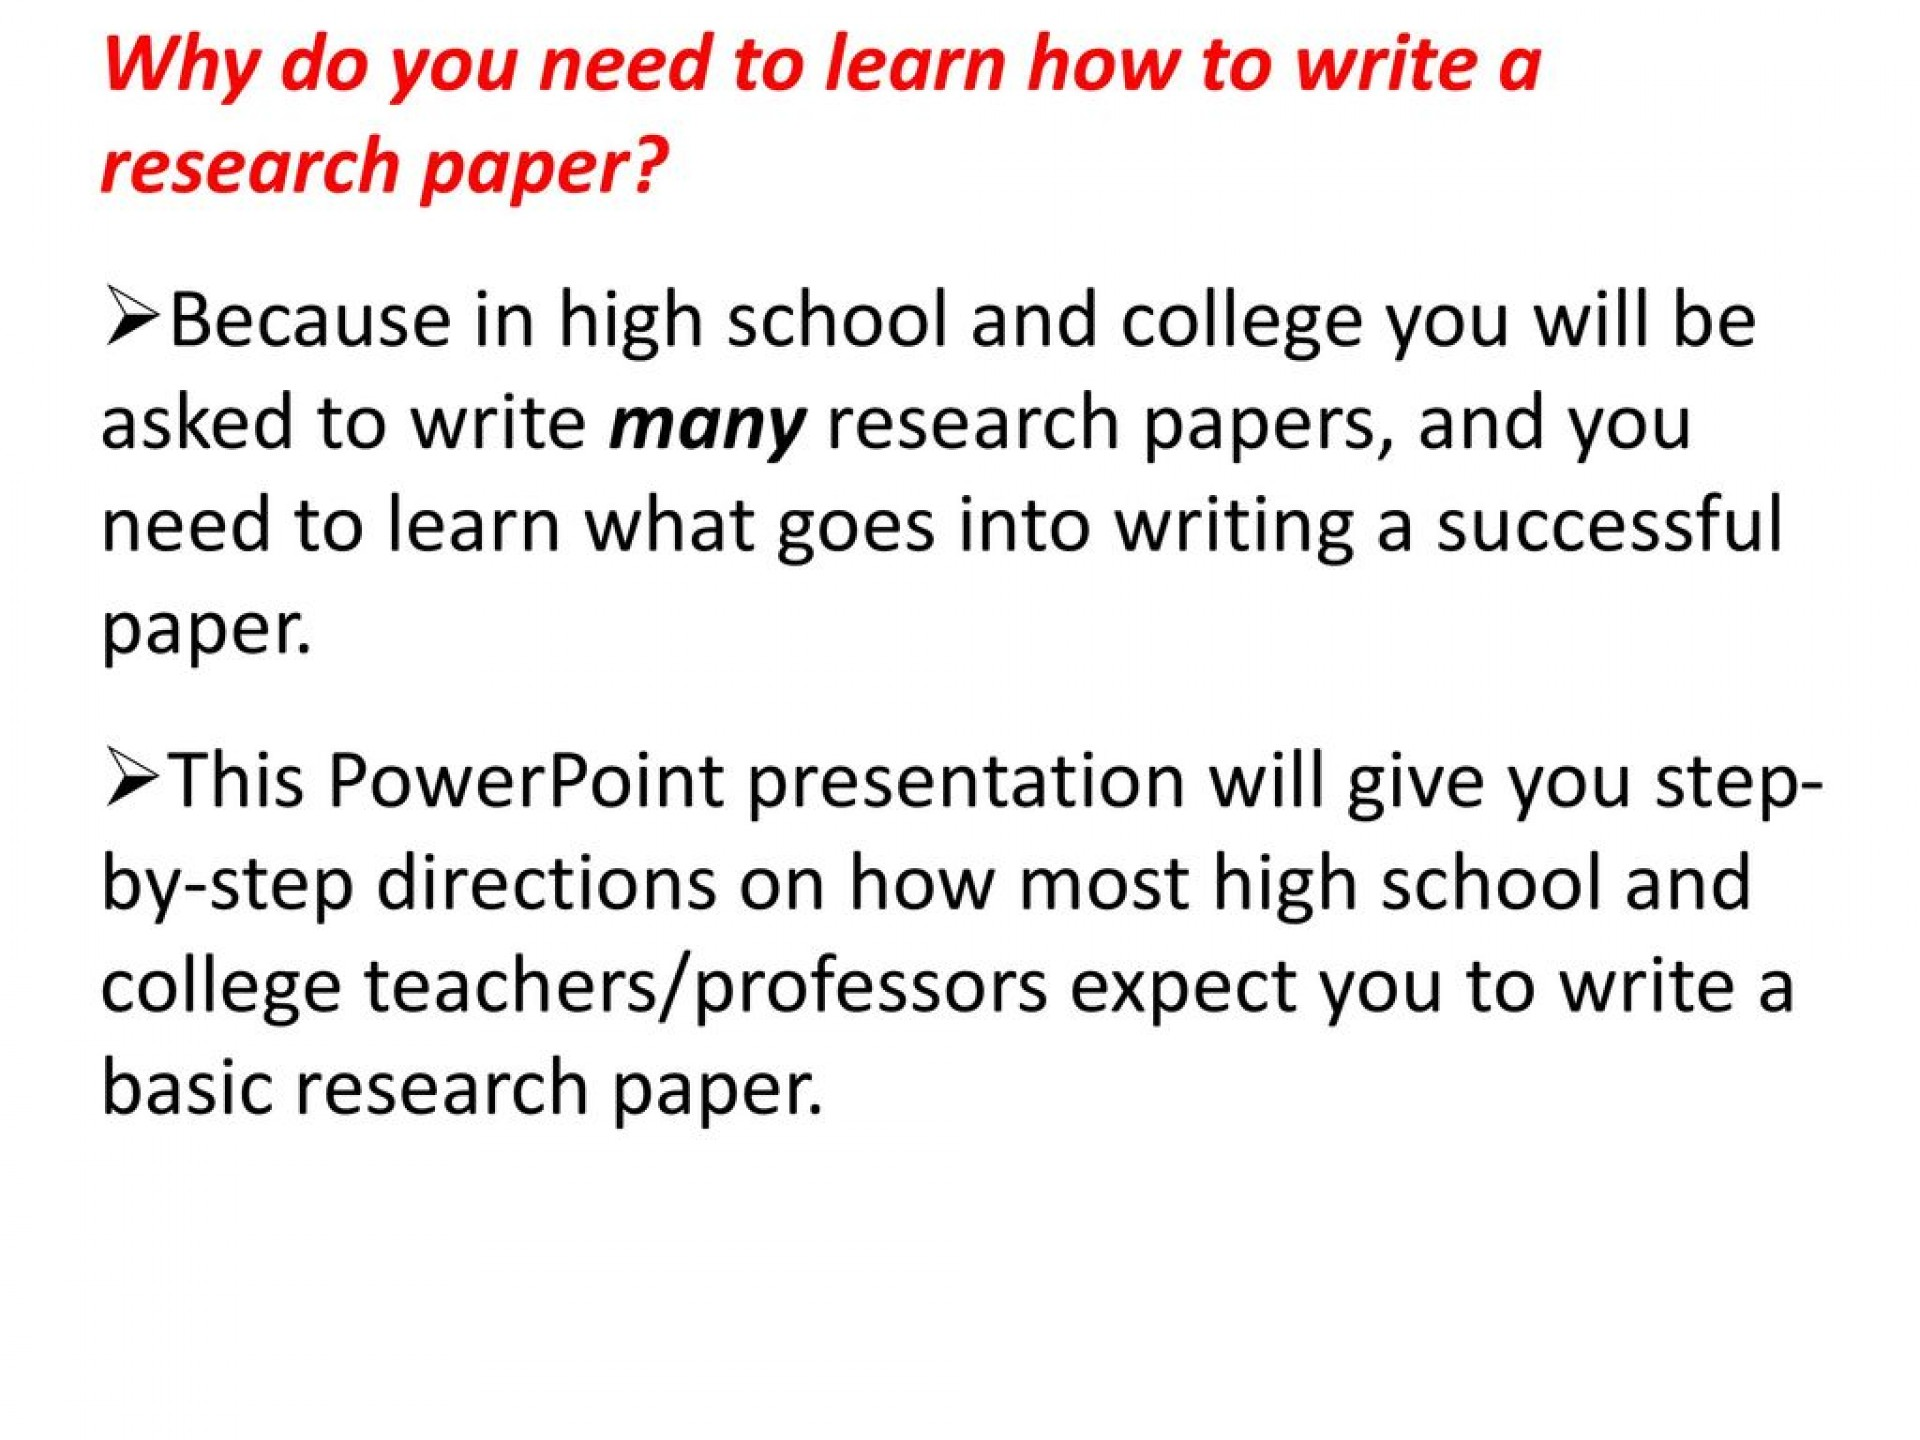 013 Whydoyouneedtolearnhowtowritearesearchpaper Research Paper How To Write Powerpoint Awesome A Presentation 1920